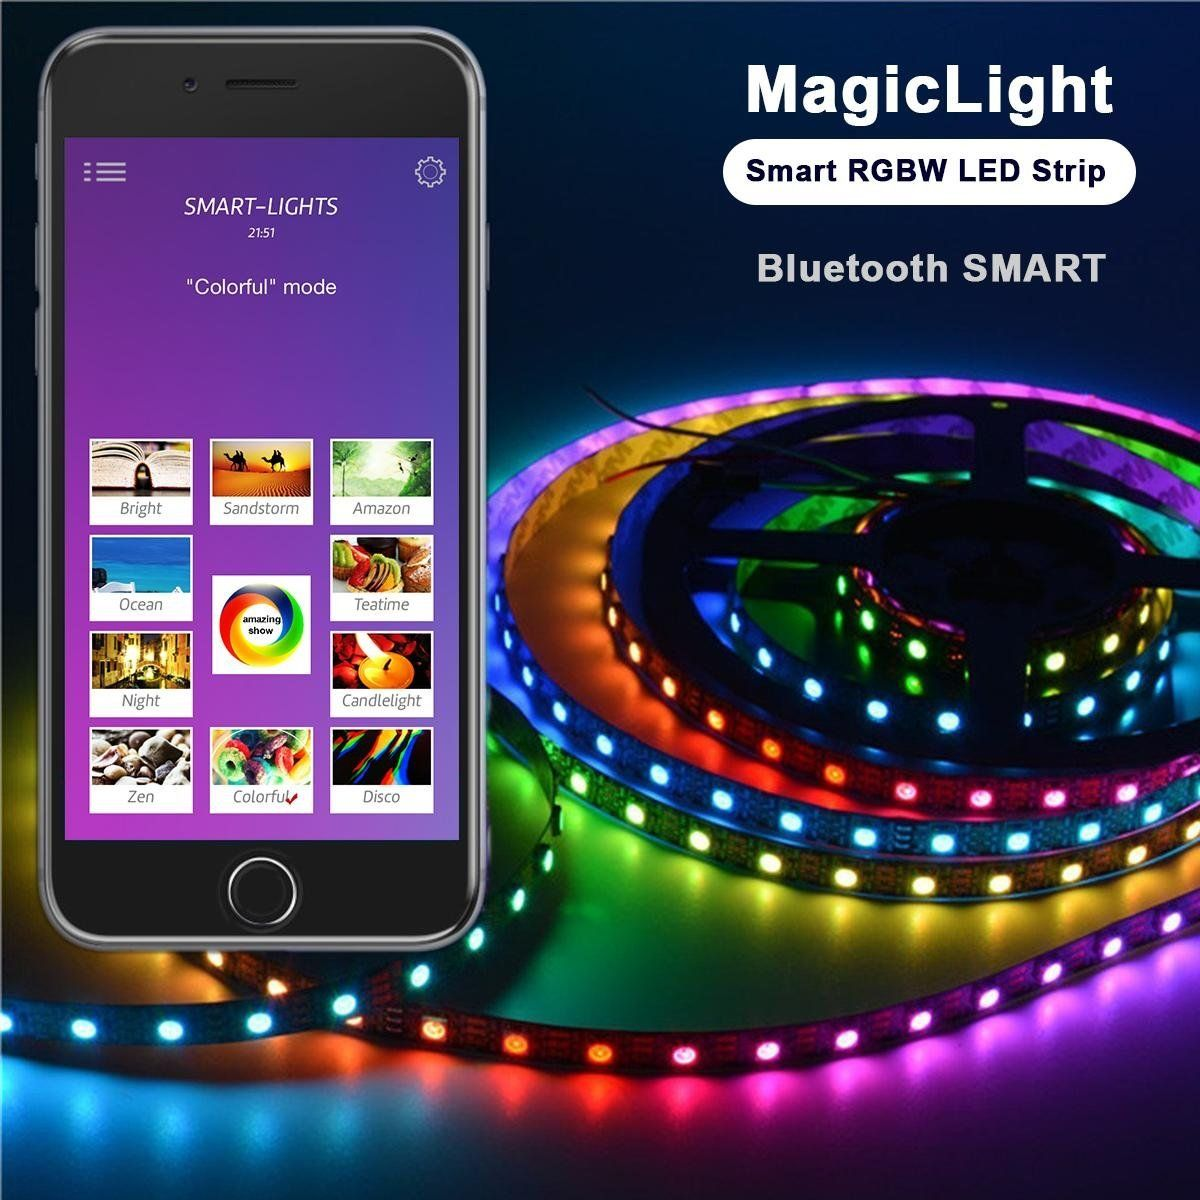 Dream Color RGB LED Lighting Kit for Gaming PC Computer Case | Computer case LED strip light kit | Pinterest | Pc computer and Software  sc 1 st  Pinterest & Dream Color RGB LED Lighting Kit for Gaming PC Computer Case ... azcodes.com